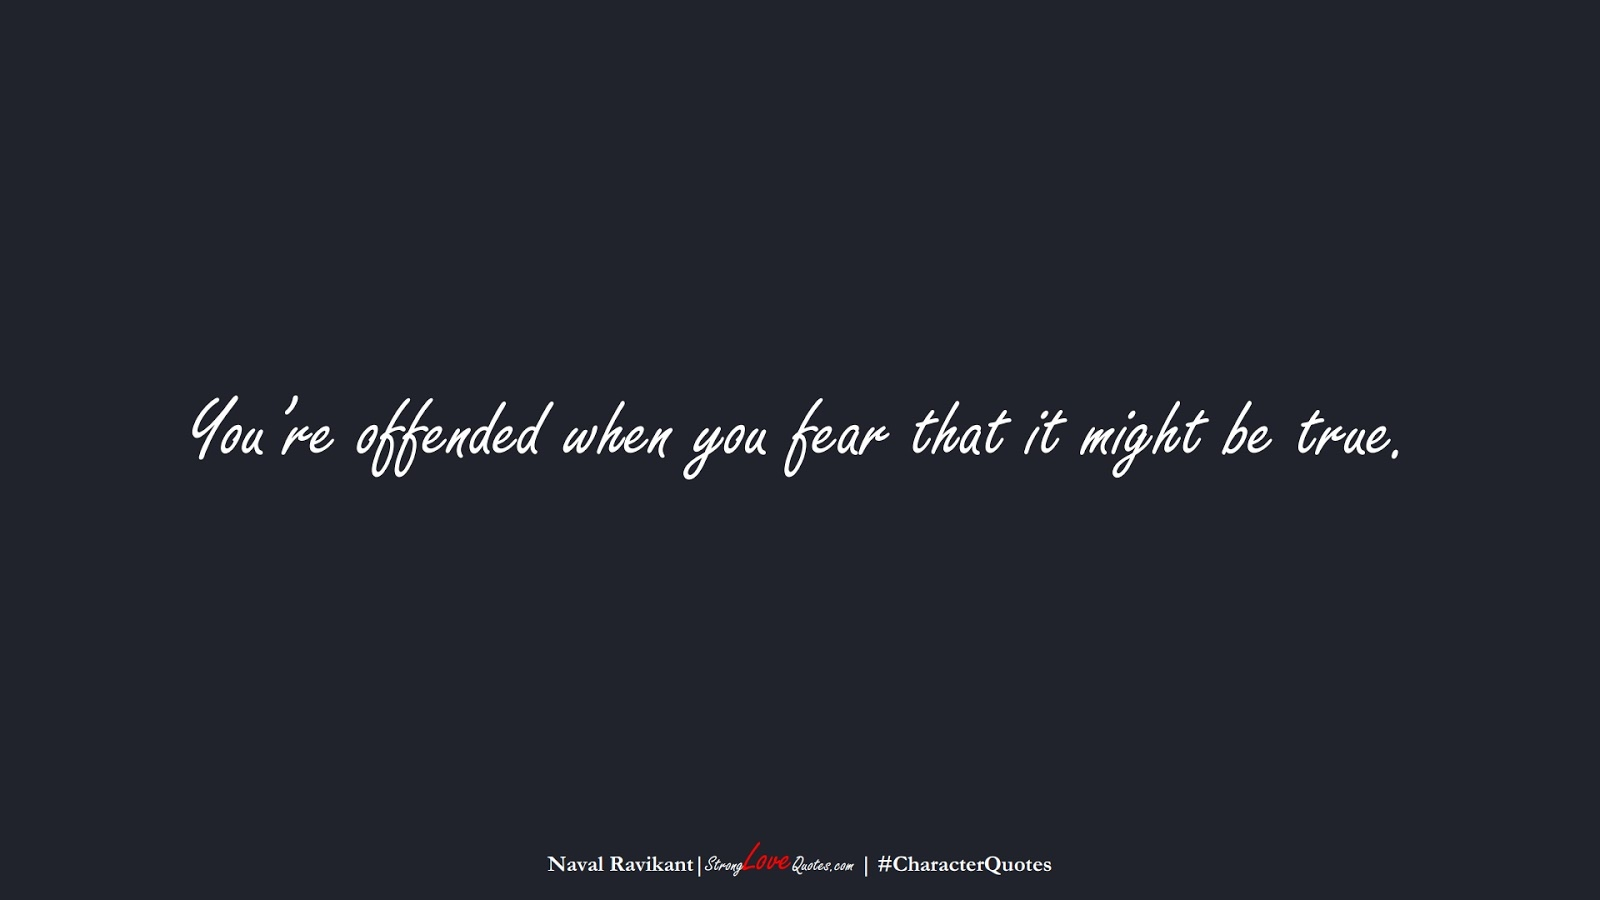 You're offended when you fear that it might be true. (Naval Ravikant);  #CharacterQuotes